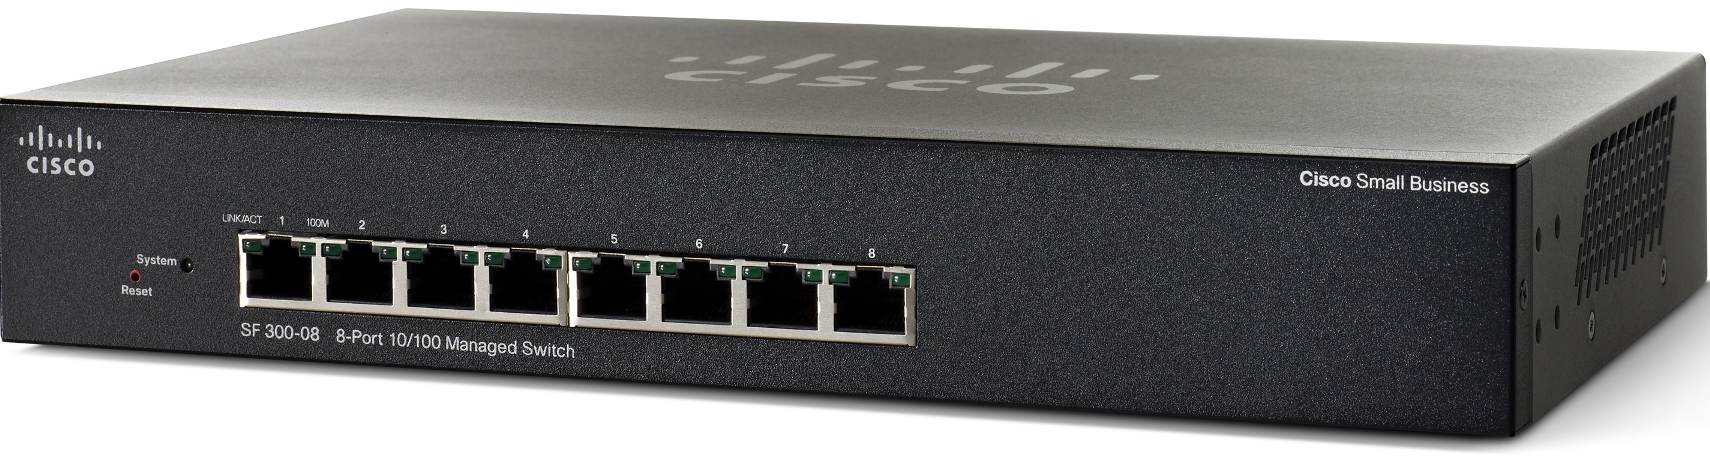 Cisco SF300-08, 8x10/100 Mng. Switch, SRW208-K9-G5